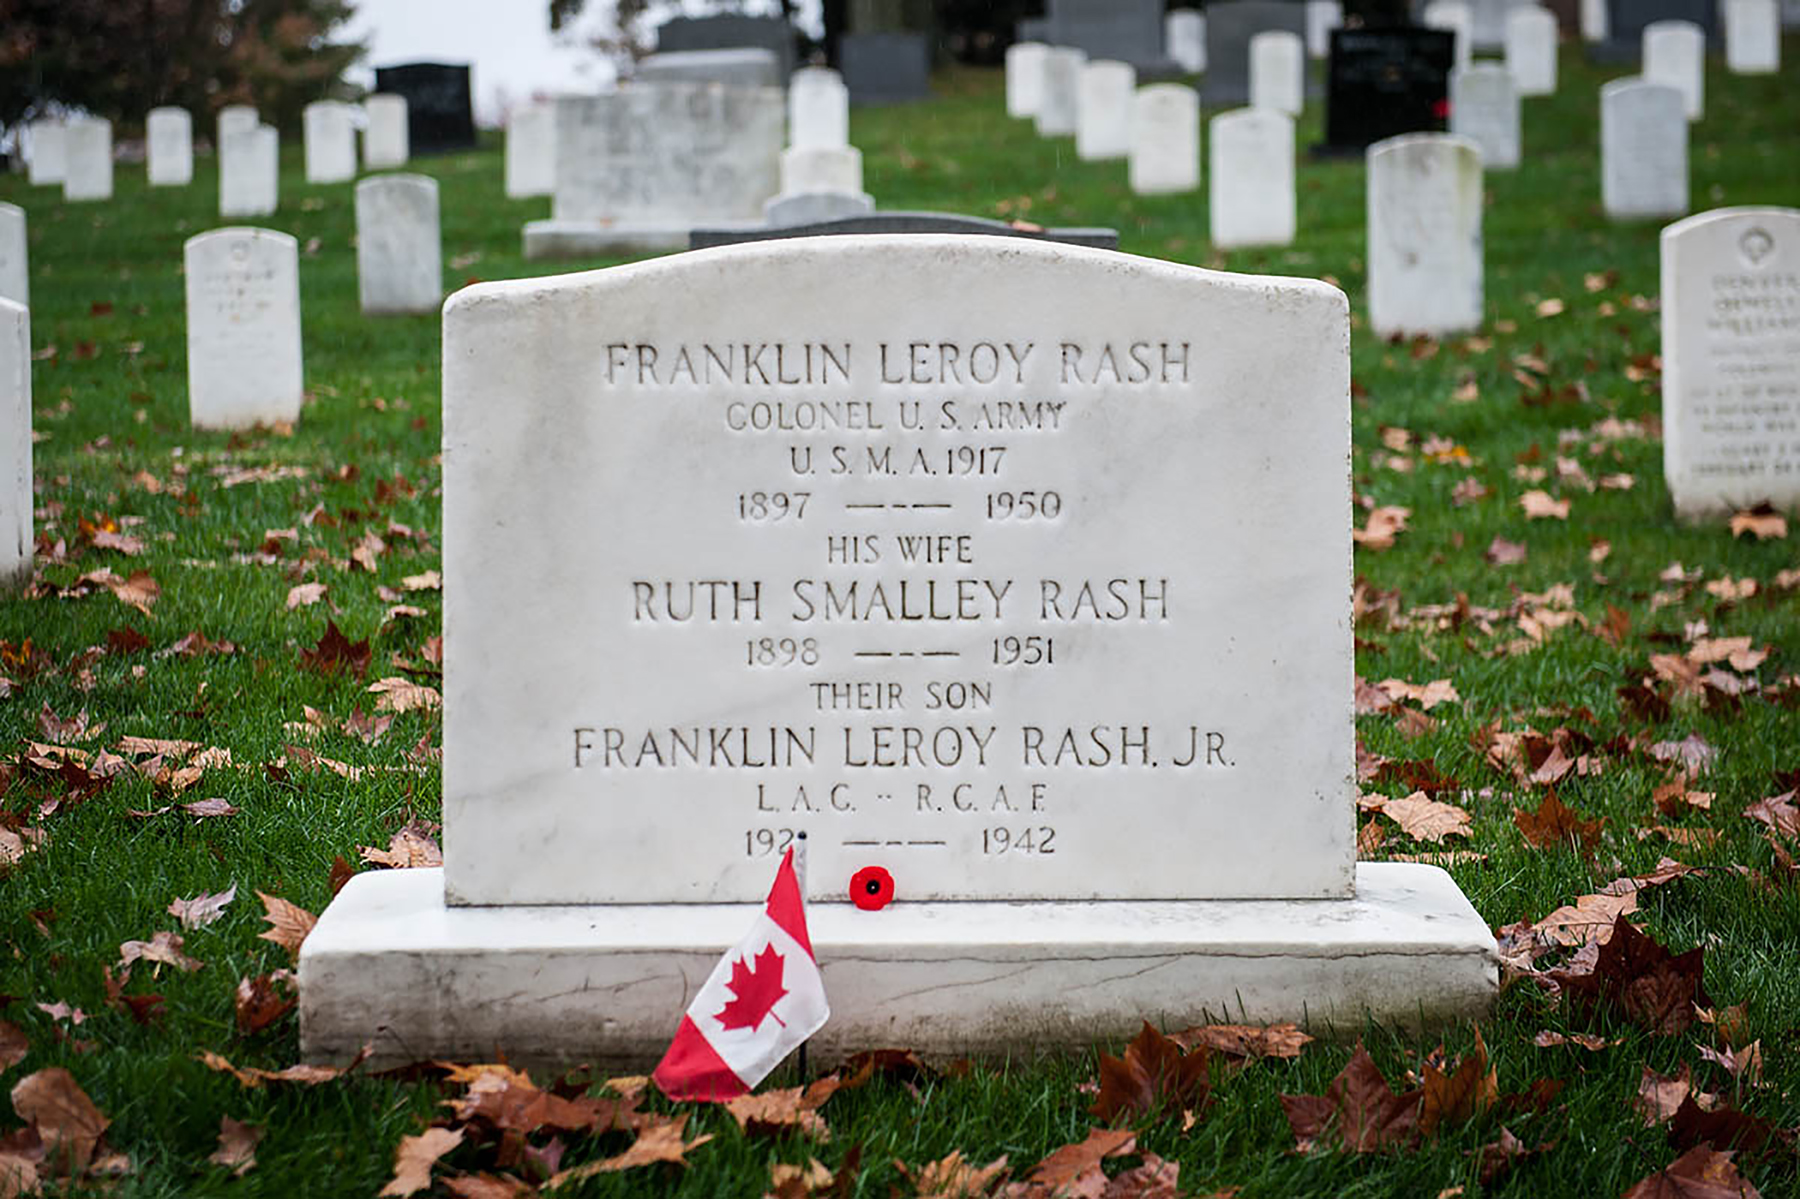 Franklin Leroy Rash, a colonel in the United States Army, his wife, Ruth Smalley Rash, and their son, Royal Canadian Air Force Leading Aircraftman Franklin Leroy Rash, Jr., who died in 1942, are buried in Arlington National Cemetery in Arlington, Virginia, U.S. Leading Aircraftman Rash came to Canada to join the war effort before the U.S. entered the war, and was a student pilot at RCAF Station Rockcliffe, Ontario, just outside of Ottawa. Leading Aircraftmen Rash, Sergeant S.V. Patterson and Warrant Officer J.R. Shanks died on September 13, 1942, near Richmond, Ontario, when their Oxford BG297 collided with a Harvard piloted by Leading Aircraftman W.K. Dean, Jr.; there were no survivors. Leading Aircraftmen Rash's war ended before he had a chance to scrap with the enemy. PHOTO: Keegan Bursaw